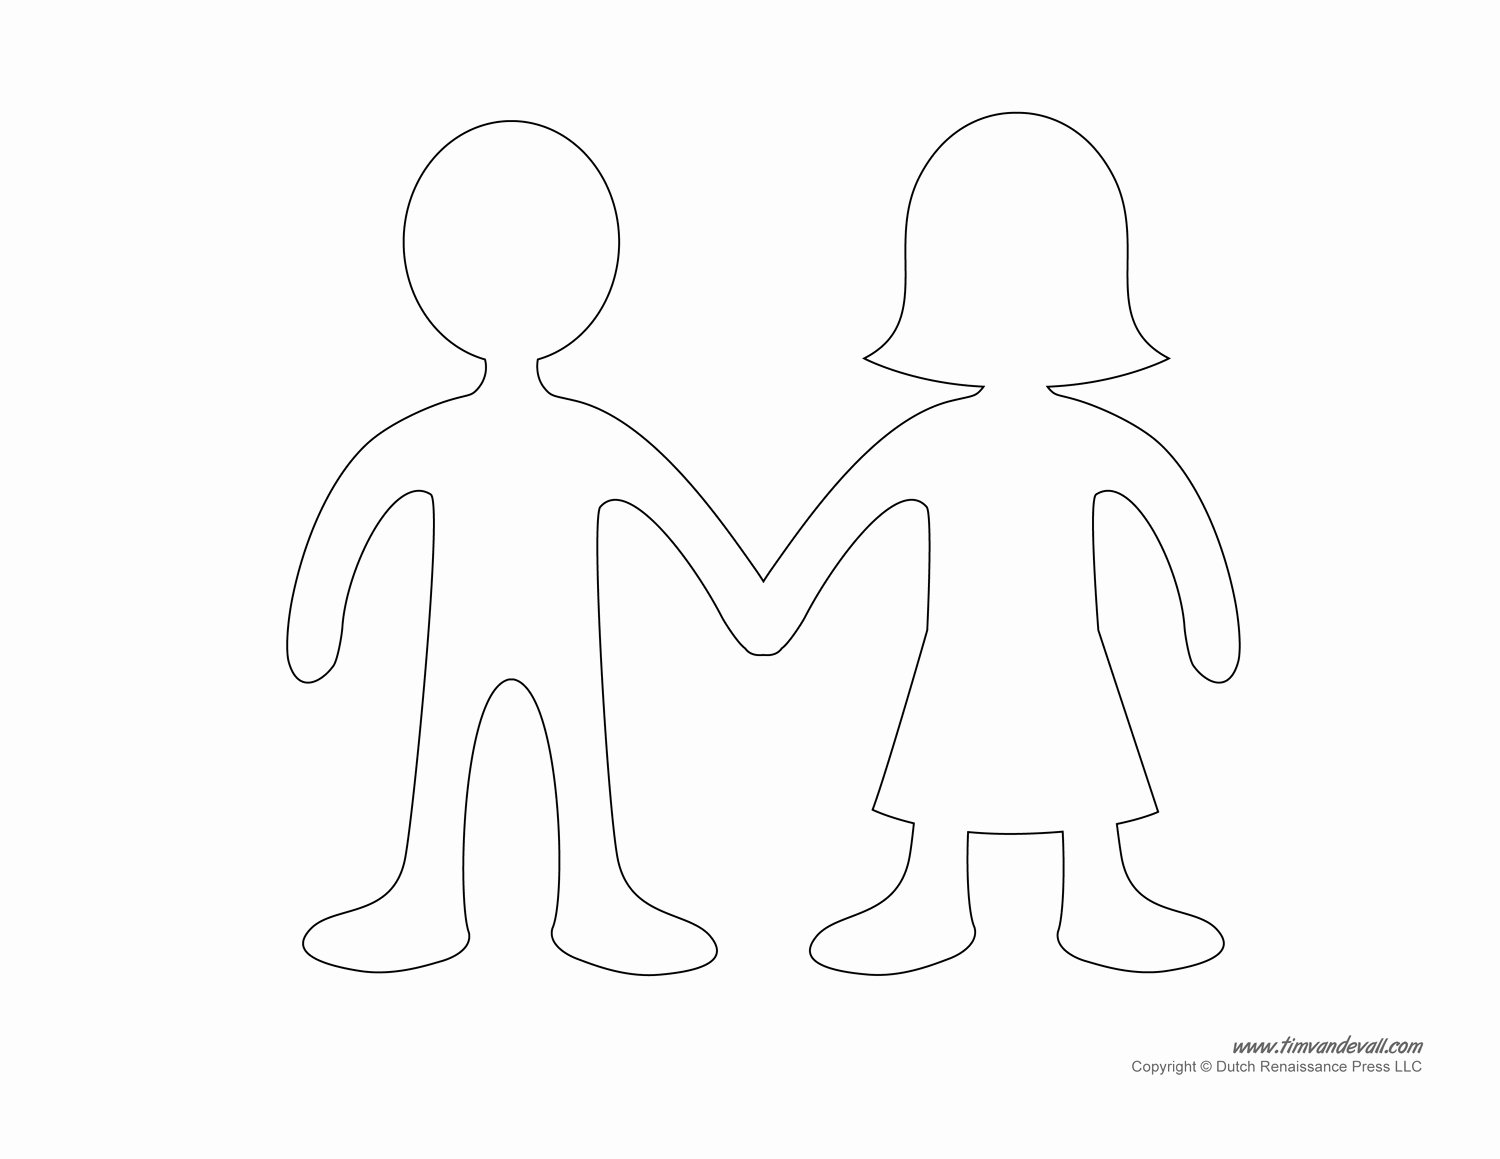 Printable Paper Dolls Templates Lovely Tim Van De Vall Ics & Printables for Kids